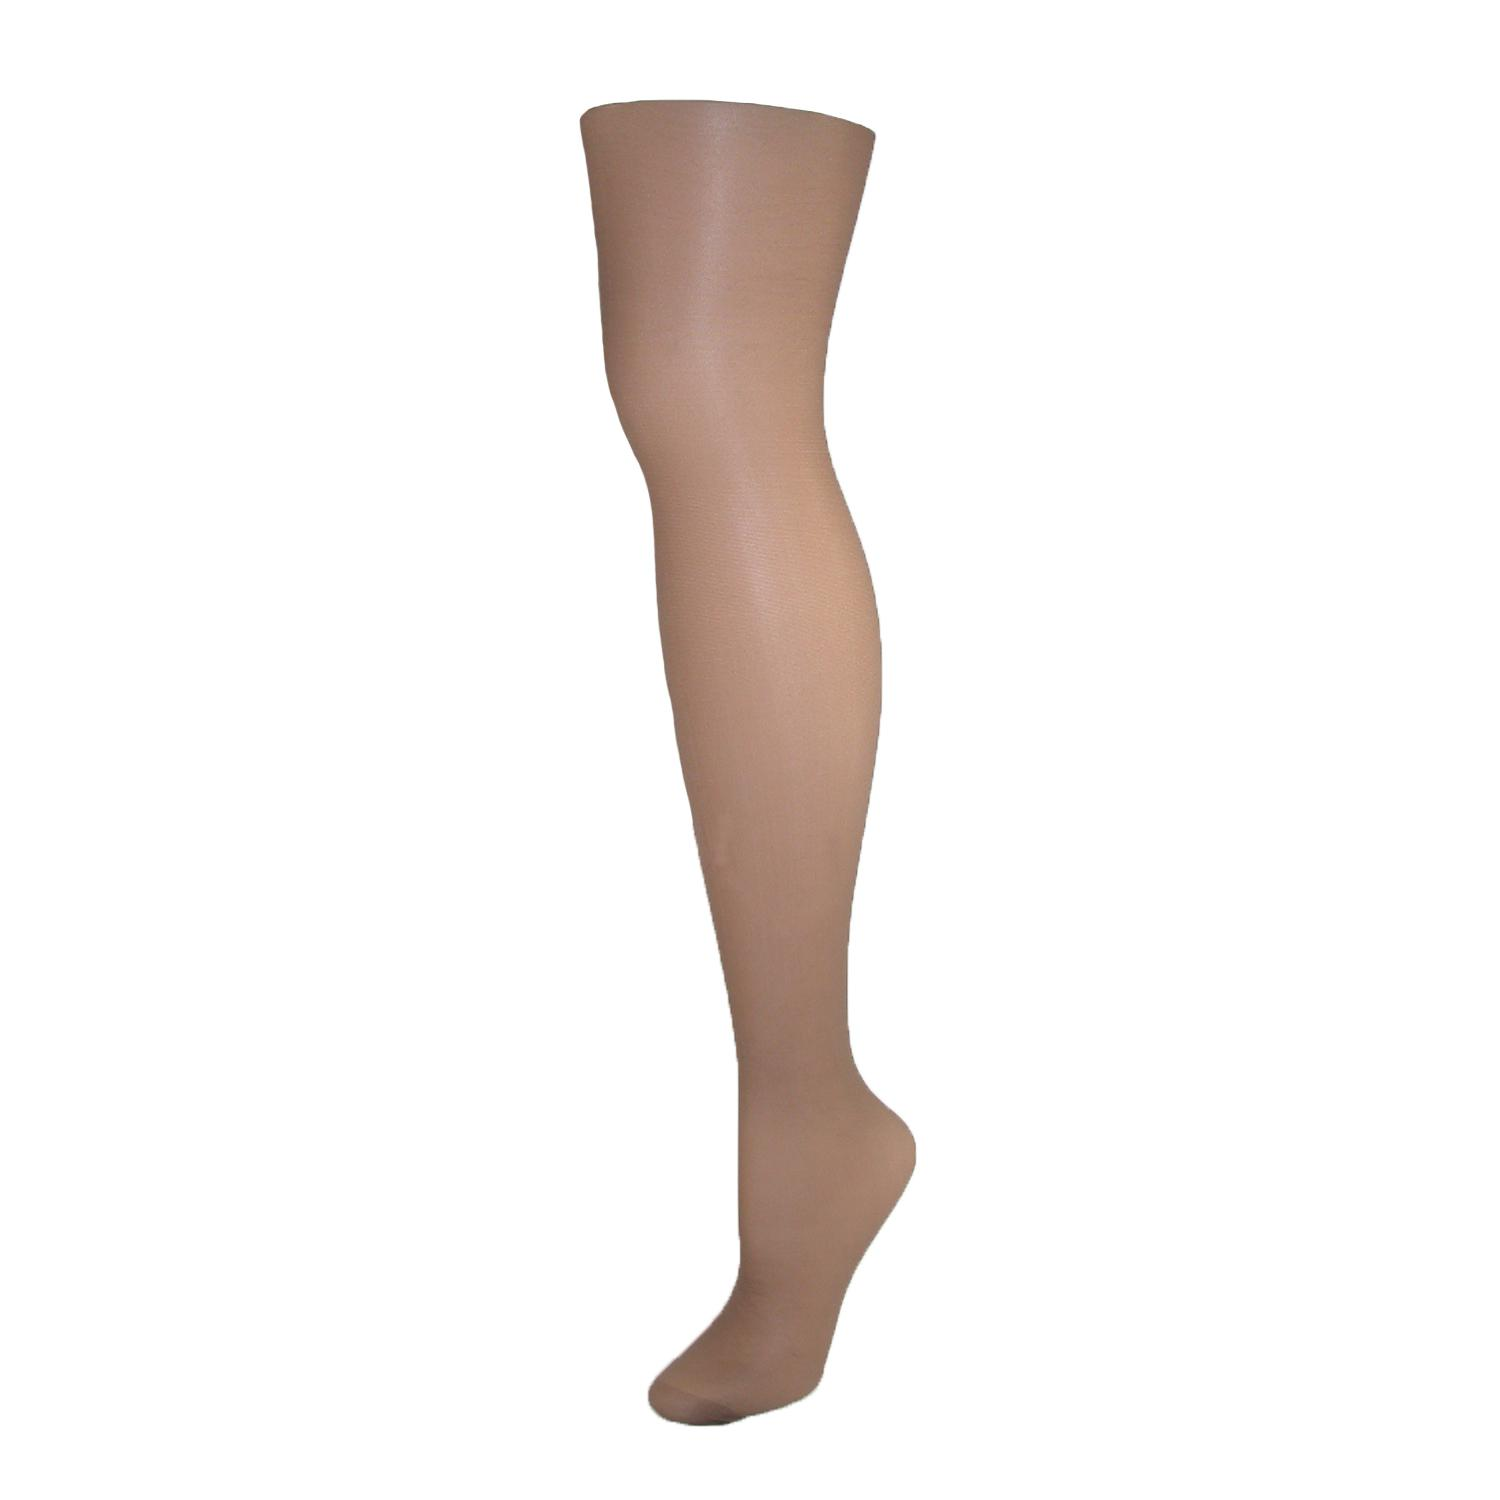 Silk reflections pantyhose for sale